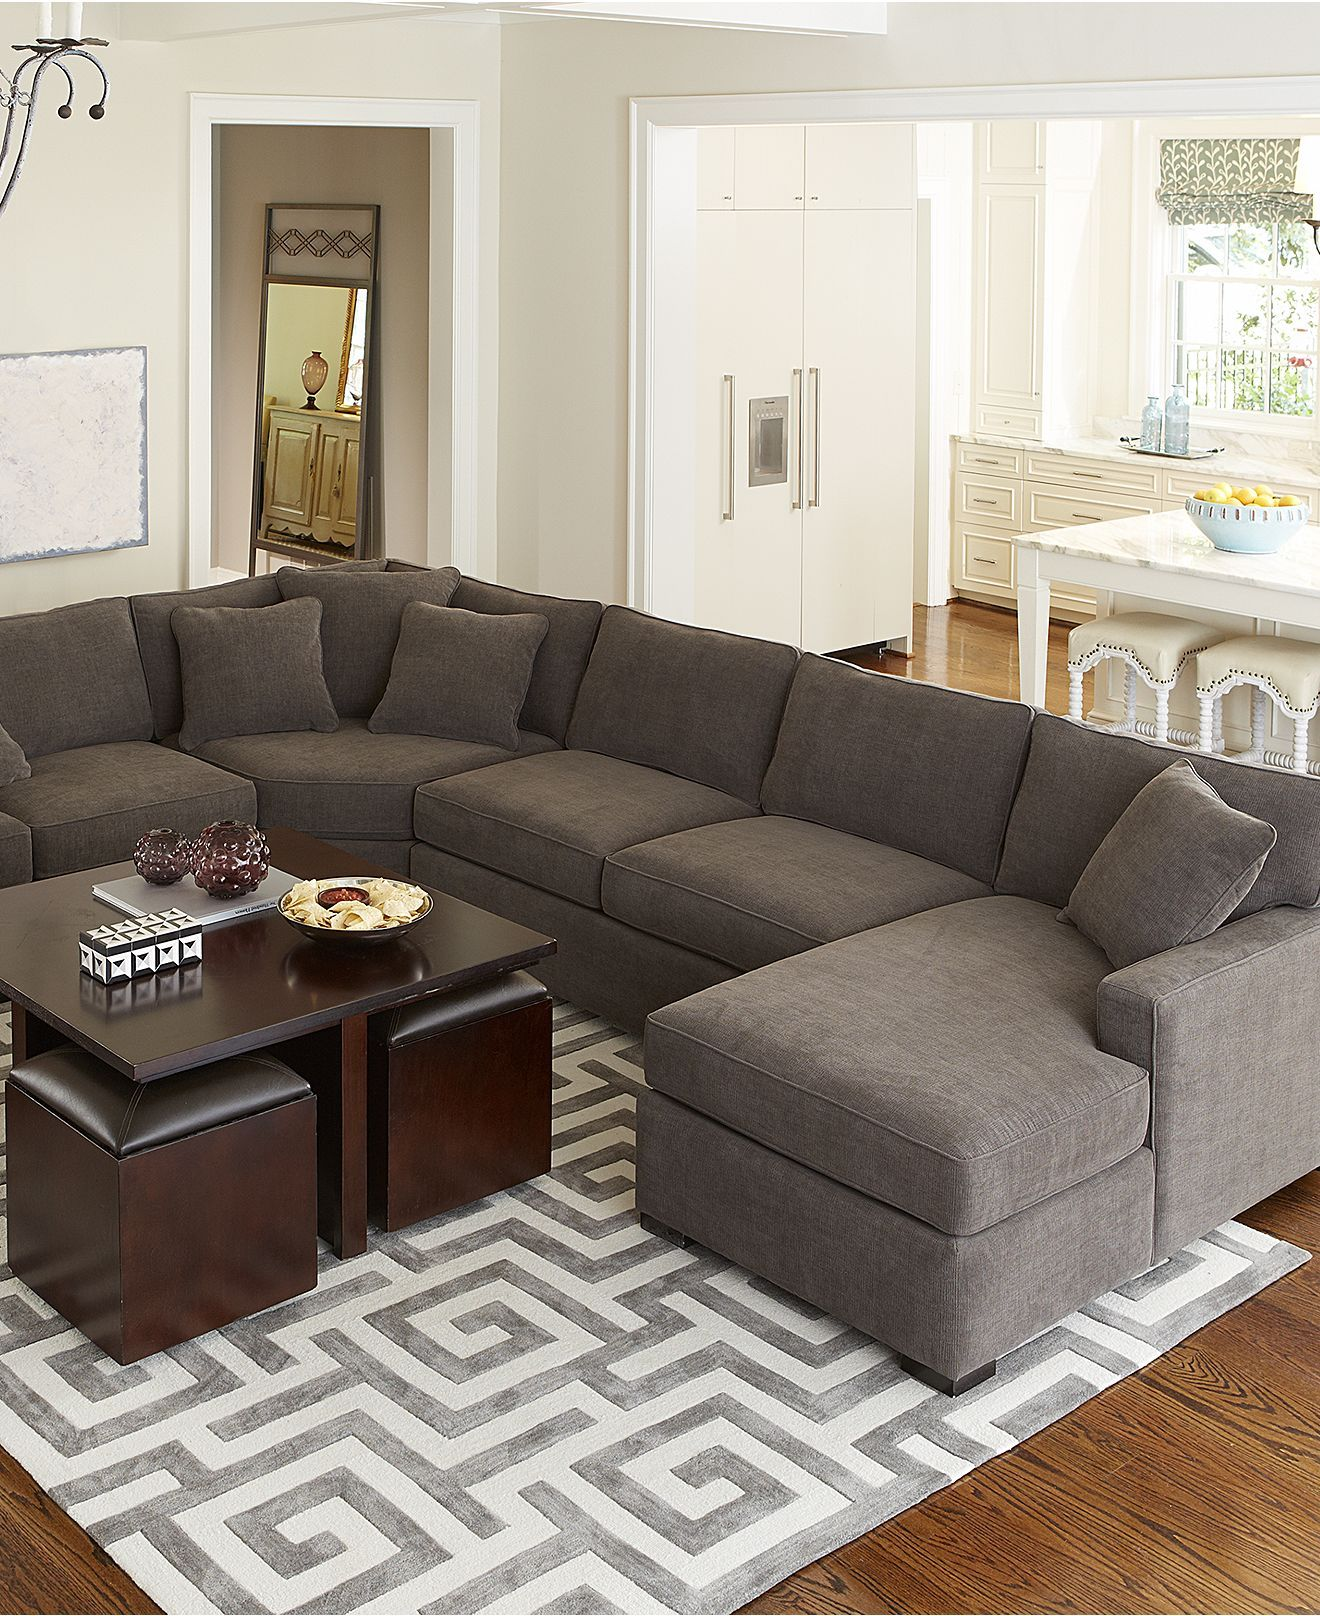 Living Room Sofas Sets Radley Fabric Sectional Sofa Collection Created For Macy S